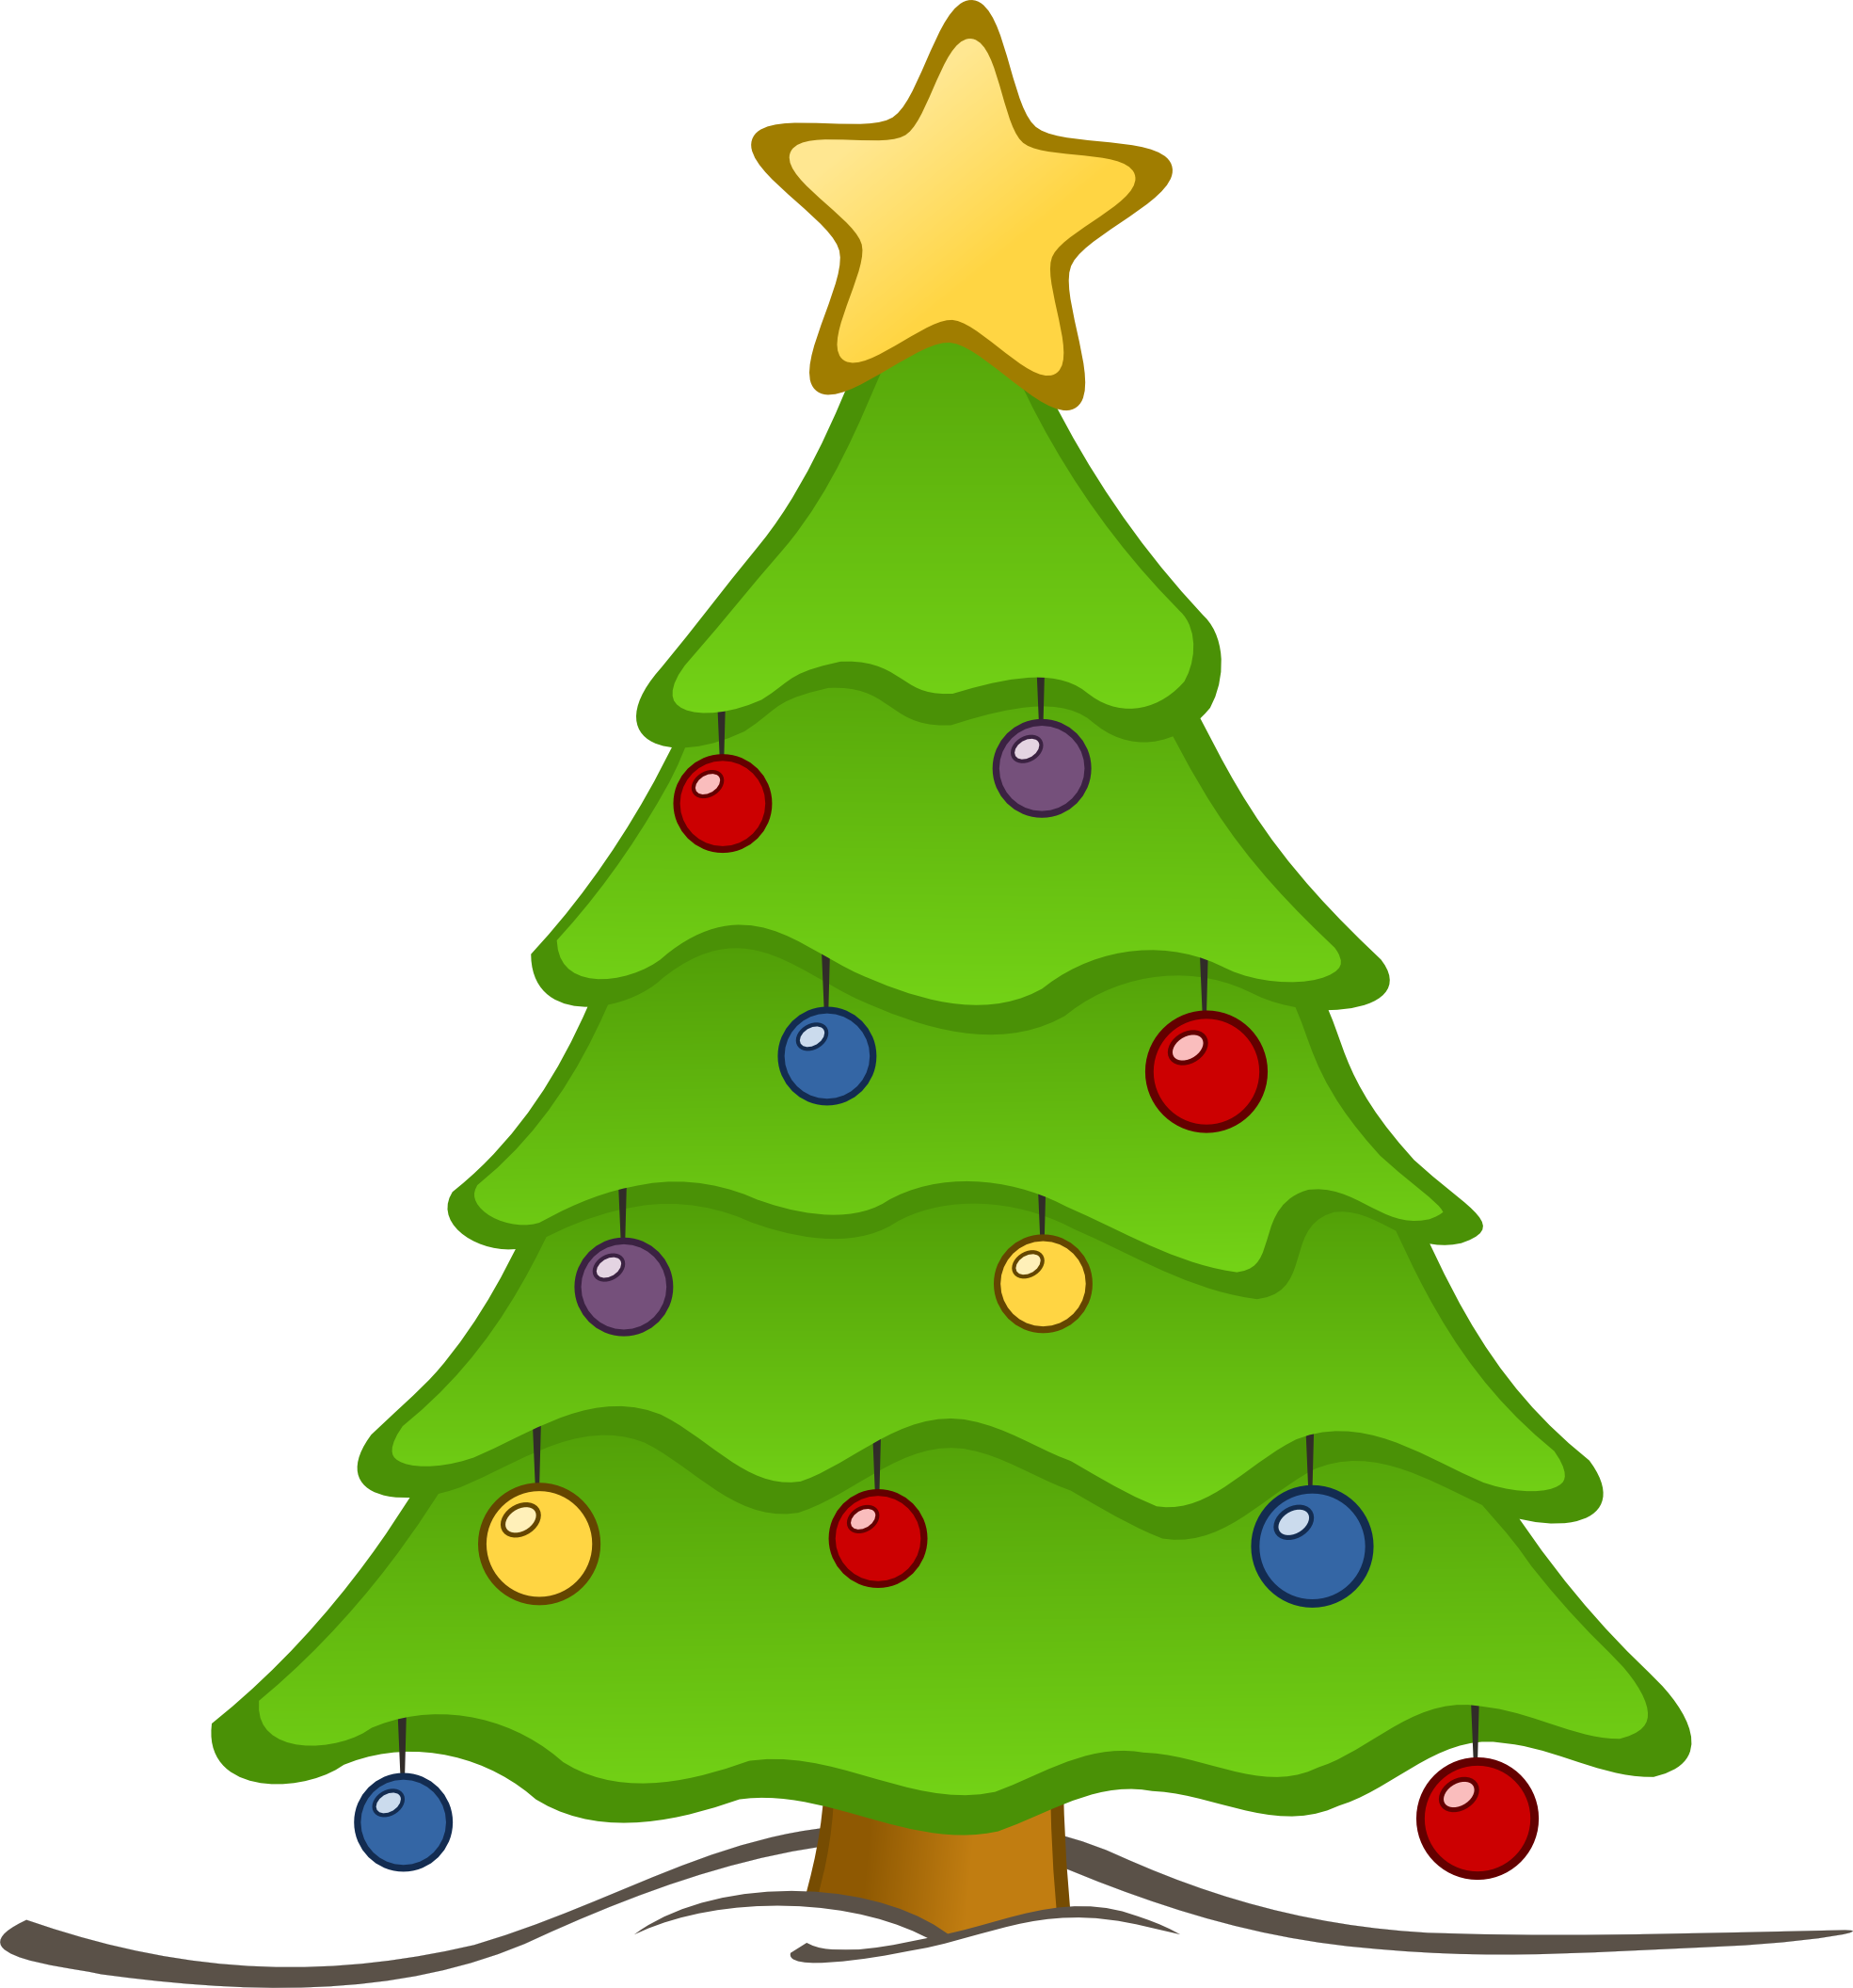 Christmas tree image clipart | Clipart Panda - Free Clipart Images